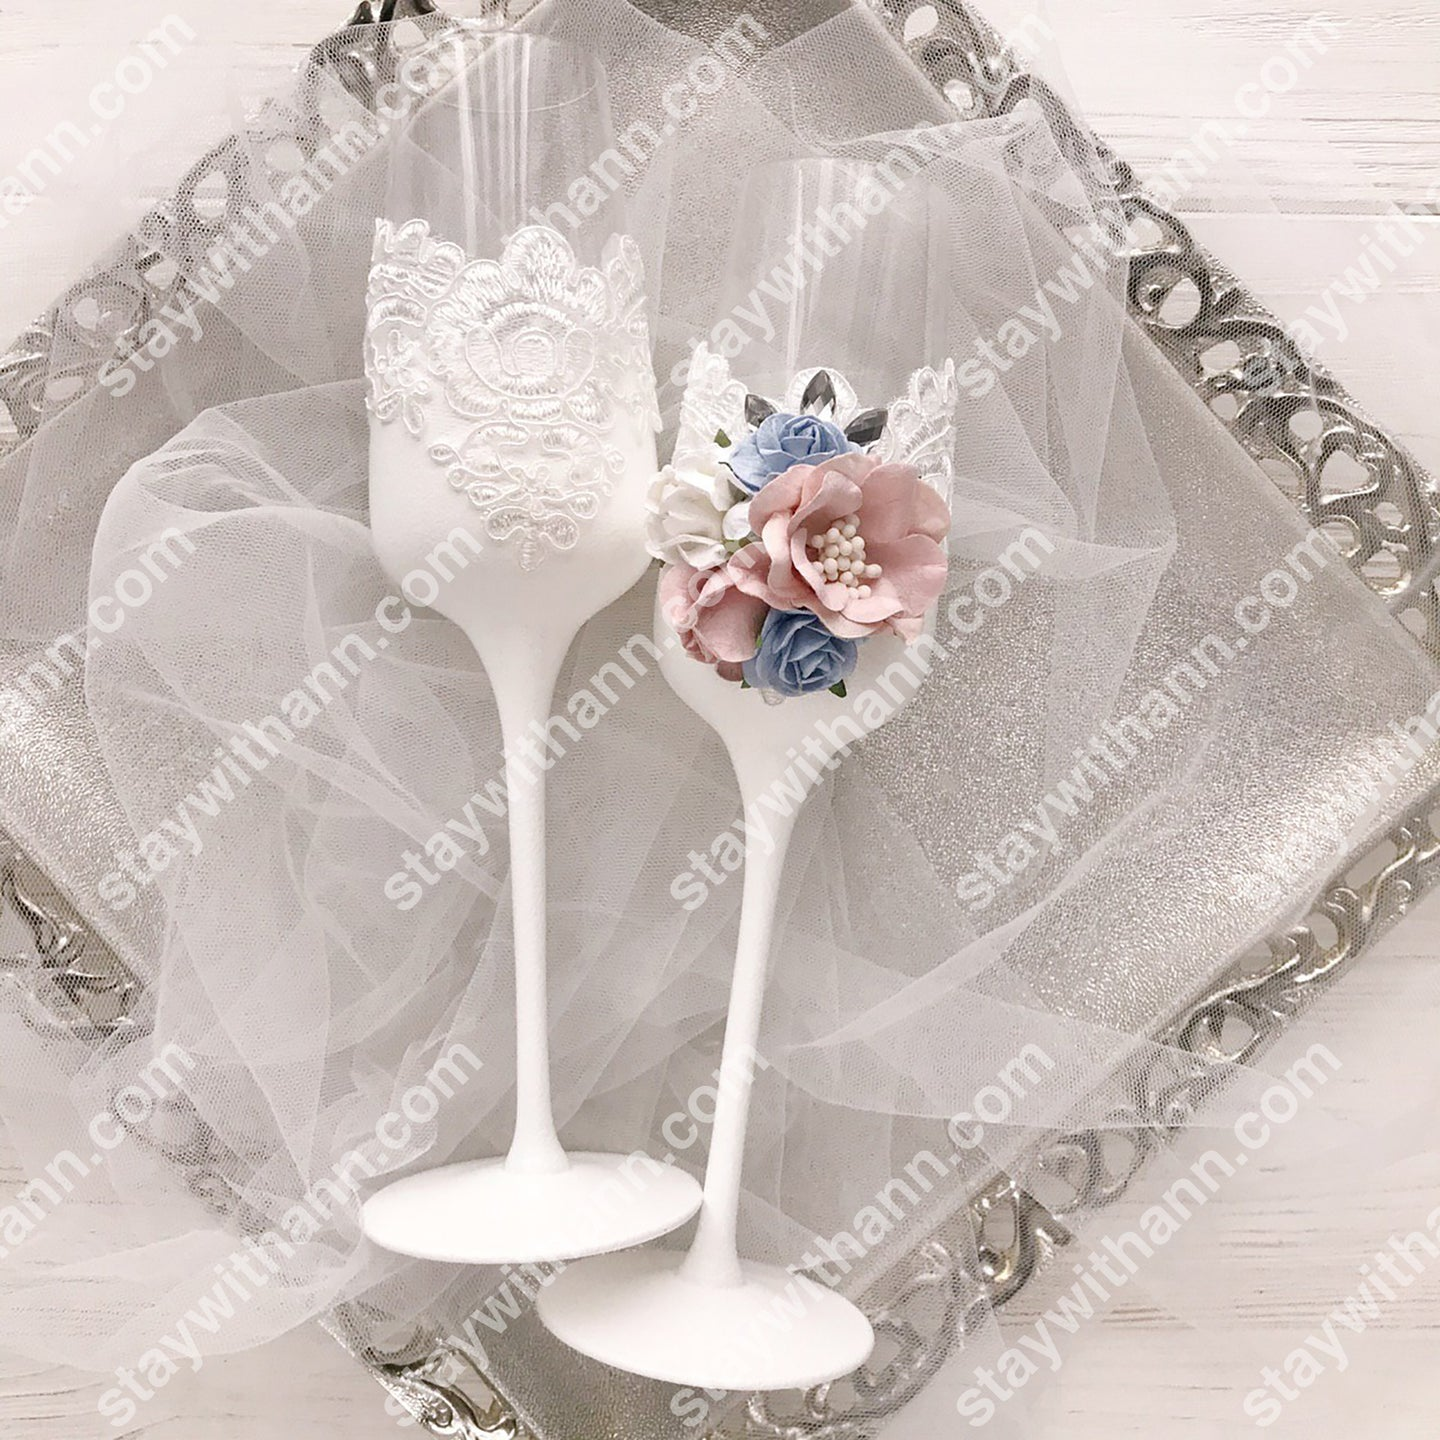 Dusty Blue, Dusty Rose, White And Silver Wedding Glasses